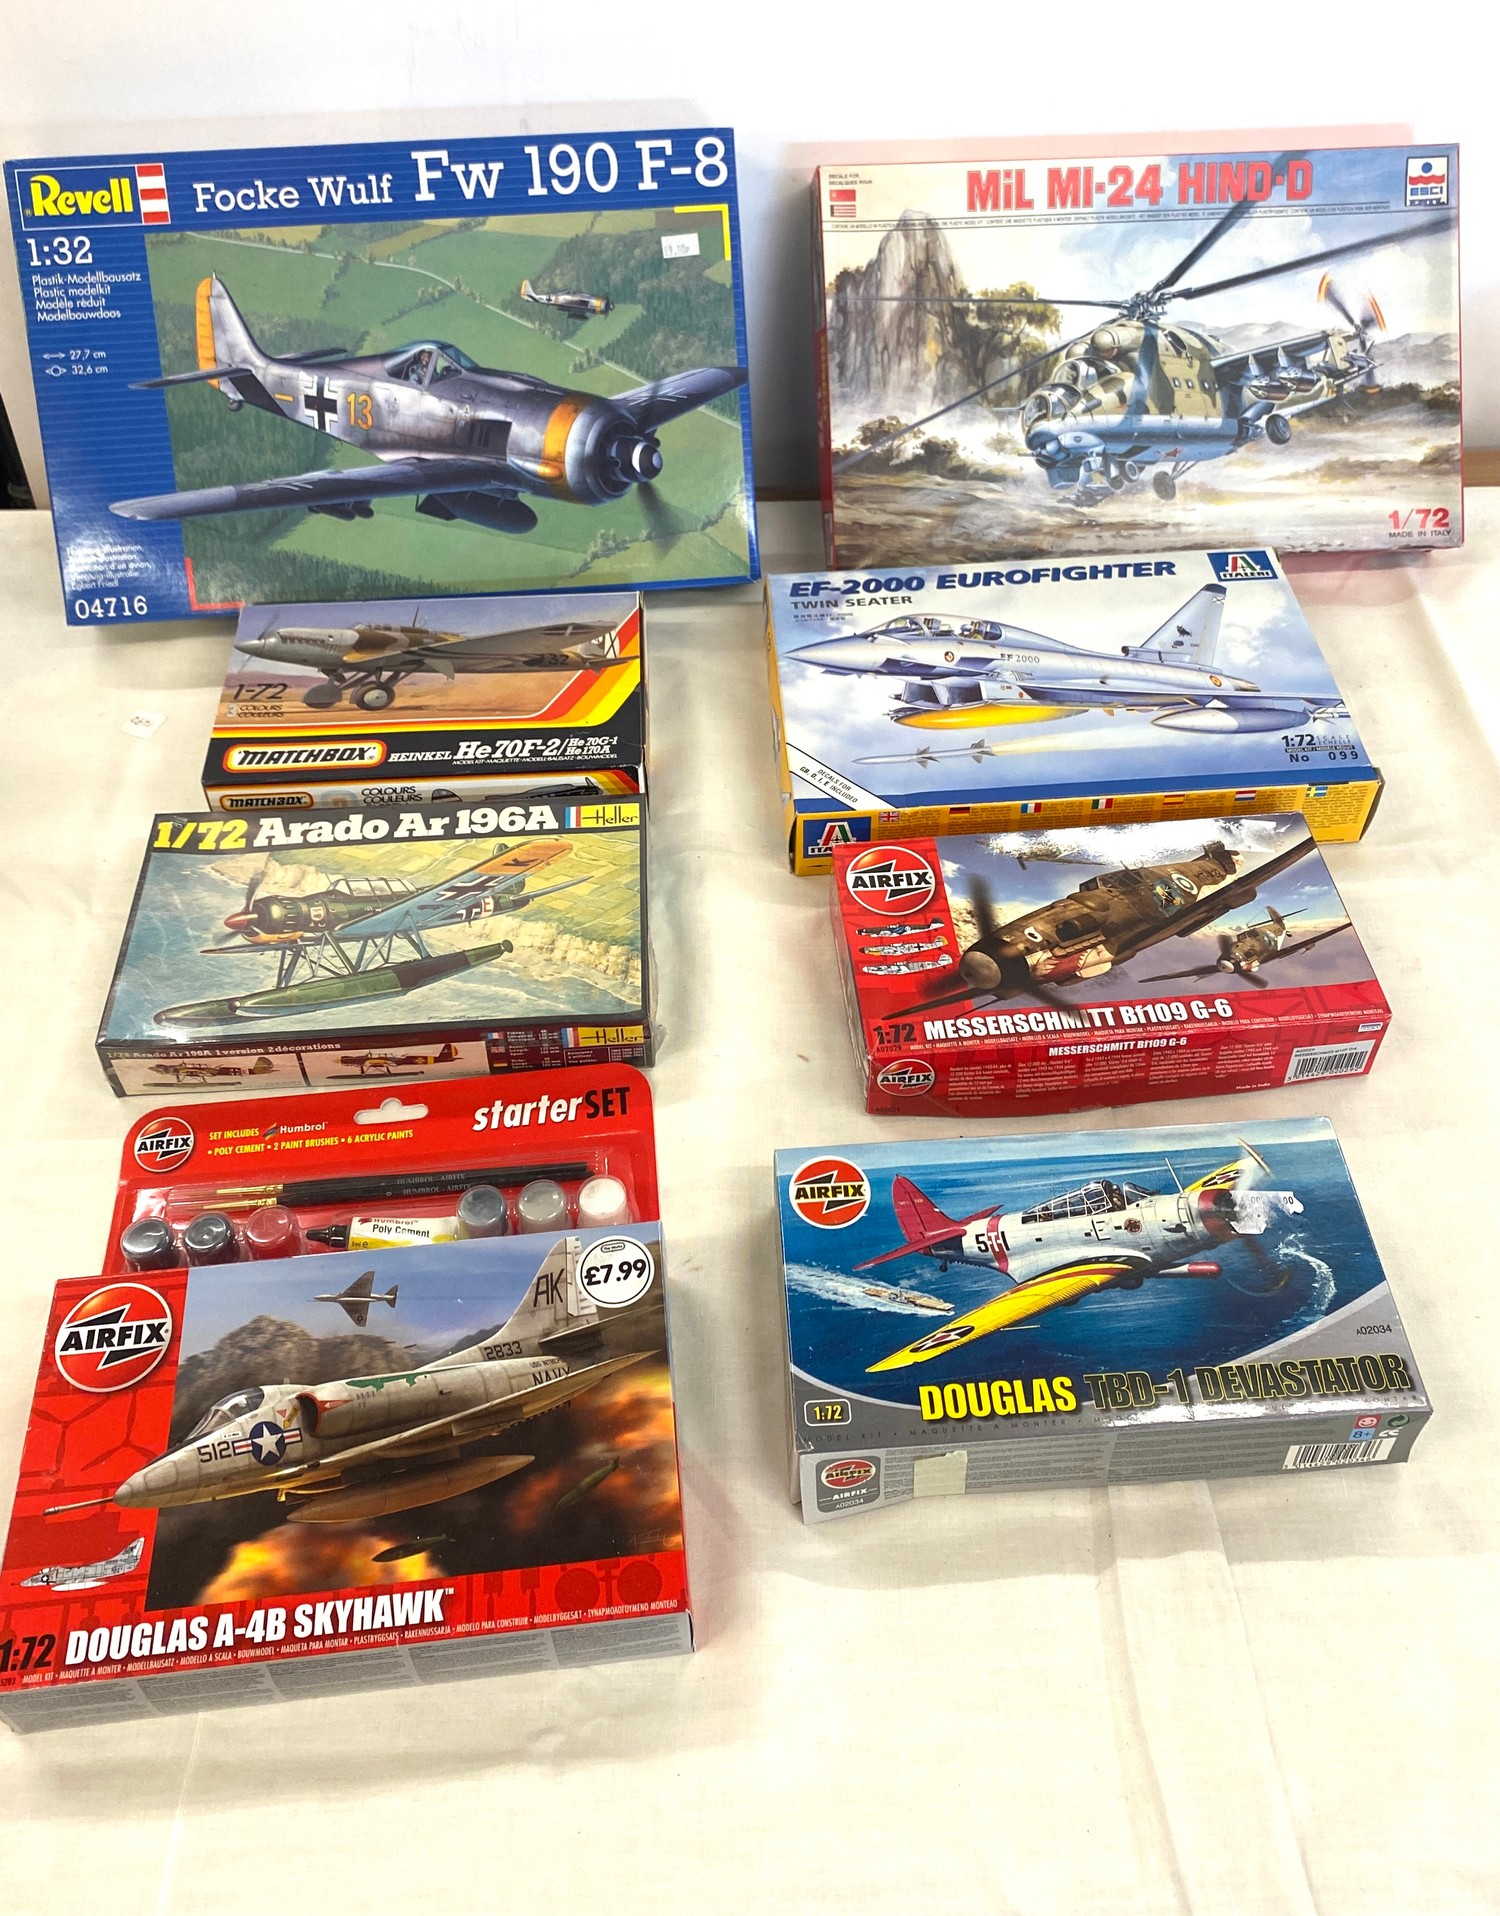 Selection of 8 boxed craft models to include, Mil MI-24 Hind-d 1/72, Douglas TBD-1, EF-2000